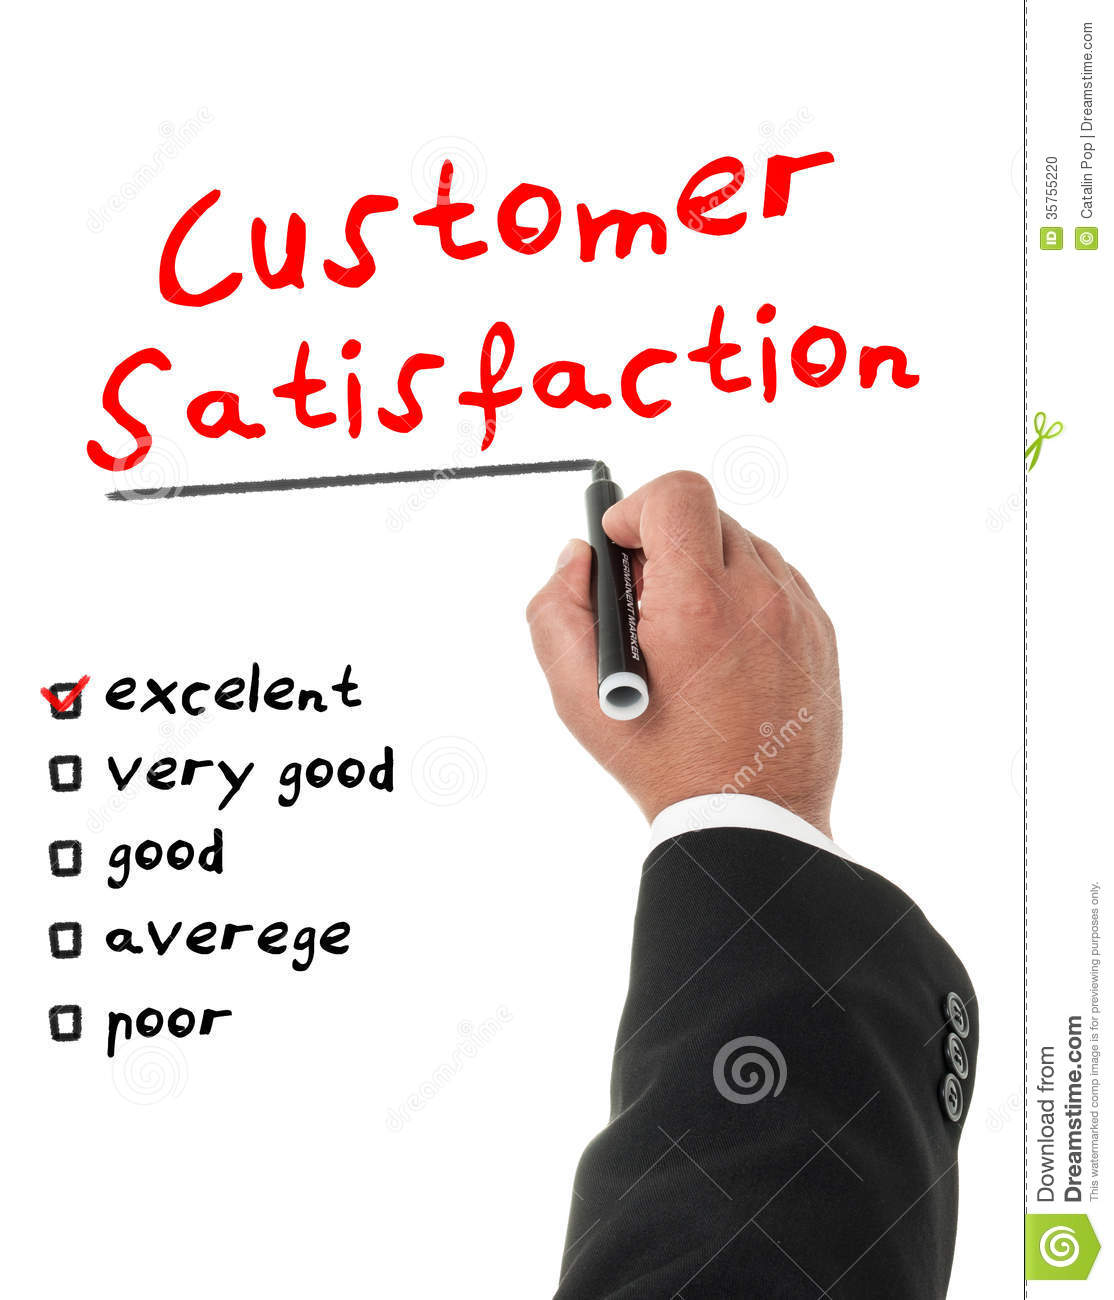 customer statisfaction research papers